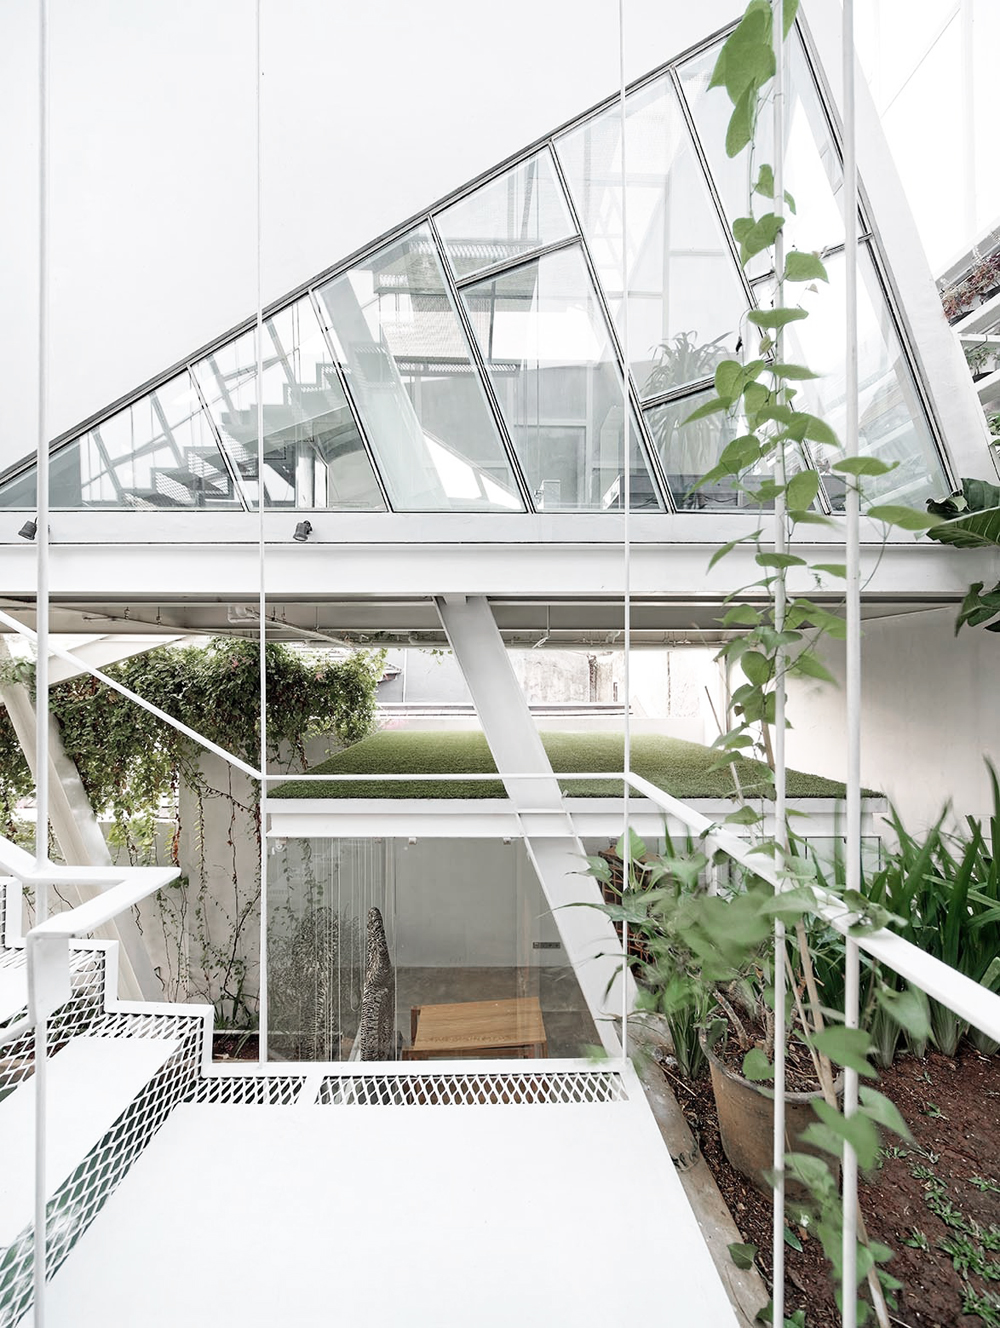 Oracle, Fox, Sunday, Sanctuary, Upside, White, Glass Bedroom, Interior, Architecture, Industrial, plants